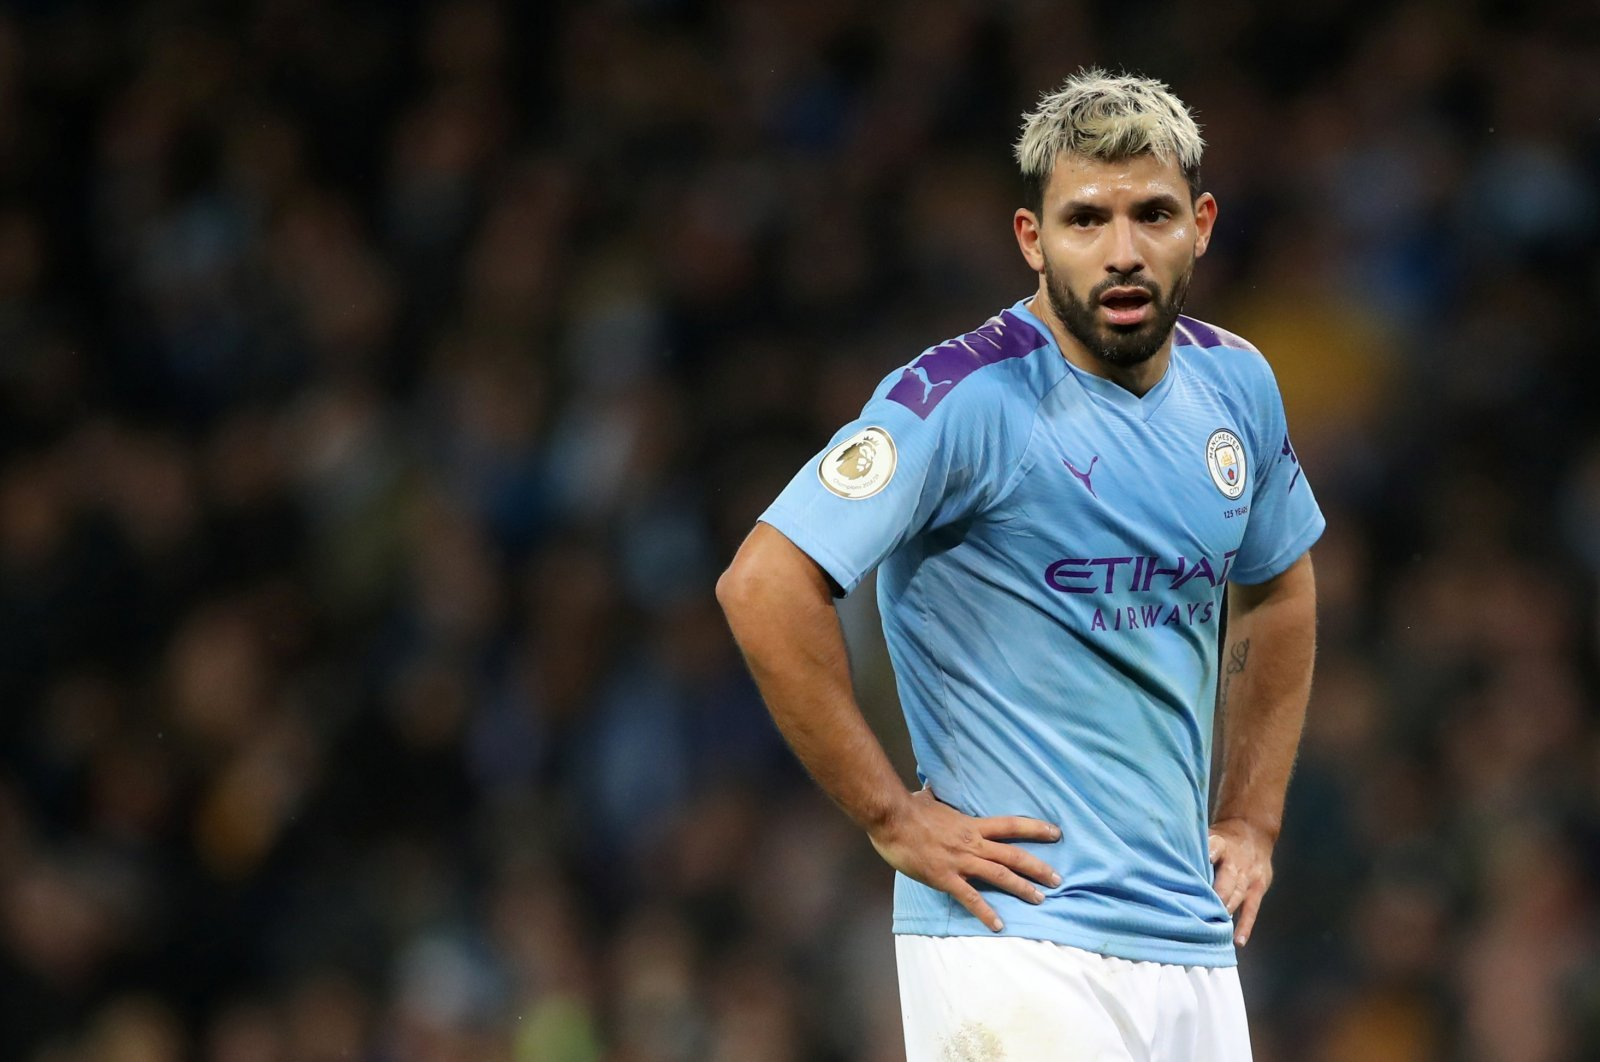 Manchester United: Fans not hopeful about derby despite Sergio Aguero's likely absence